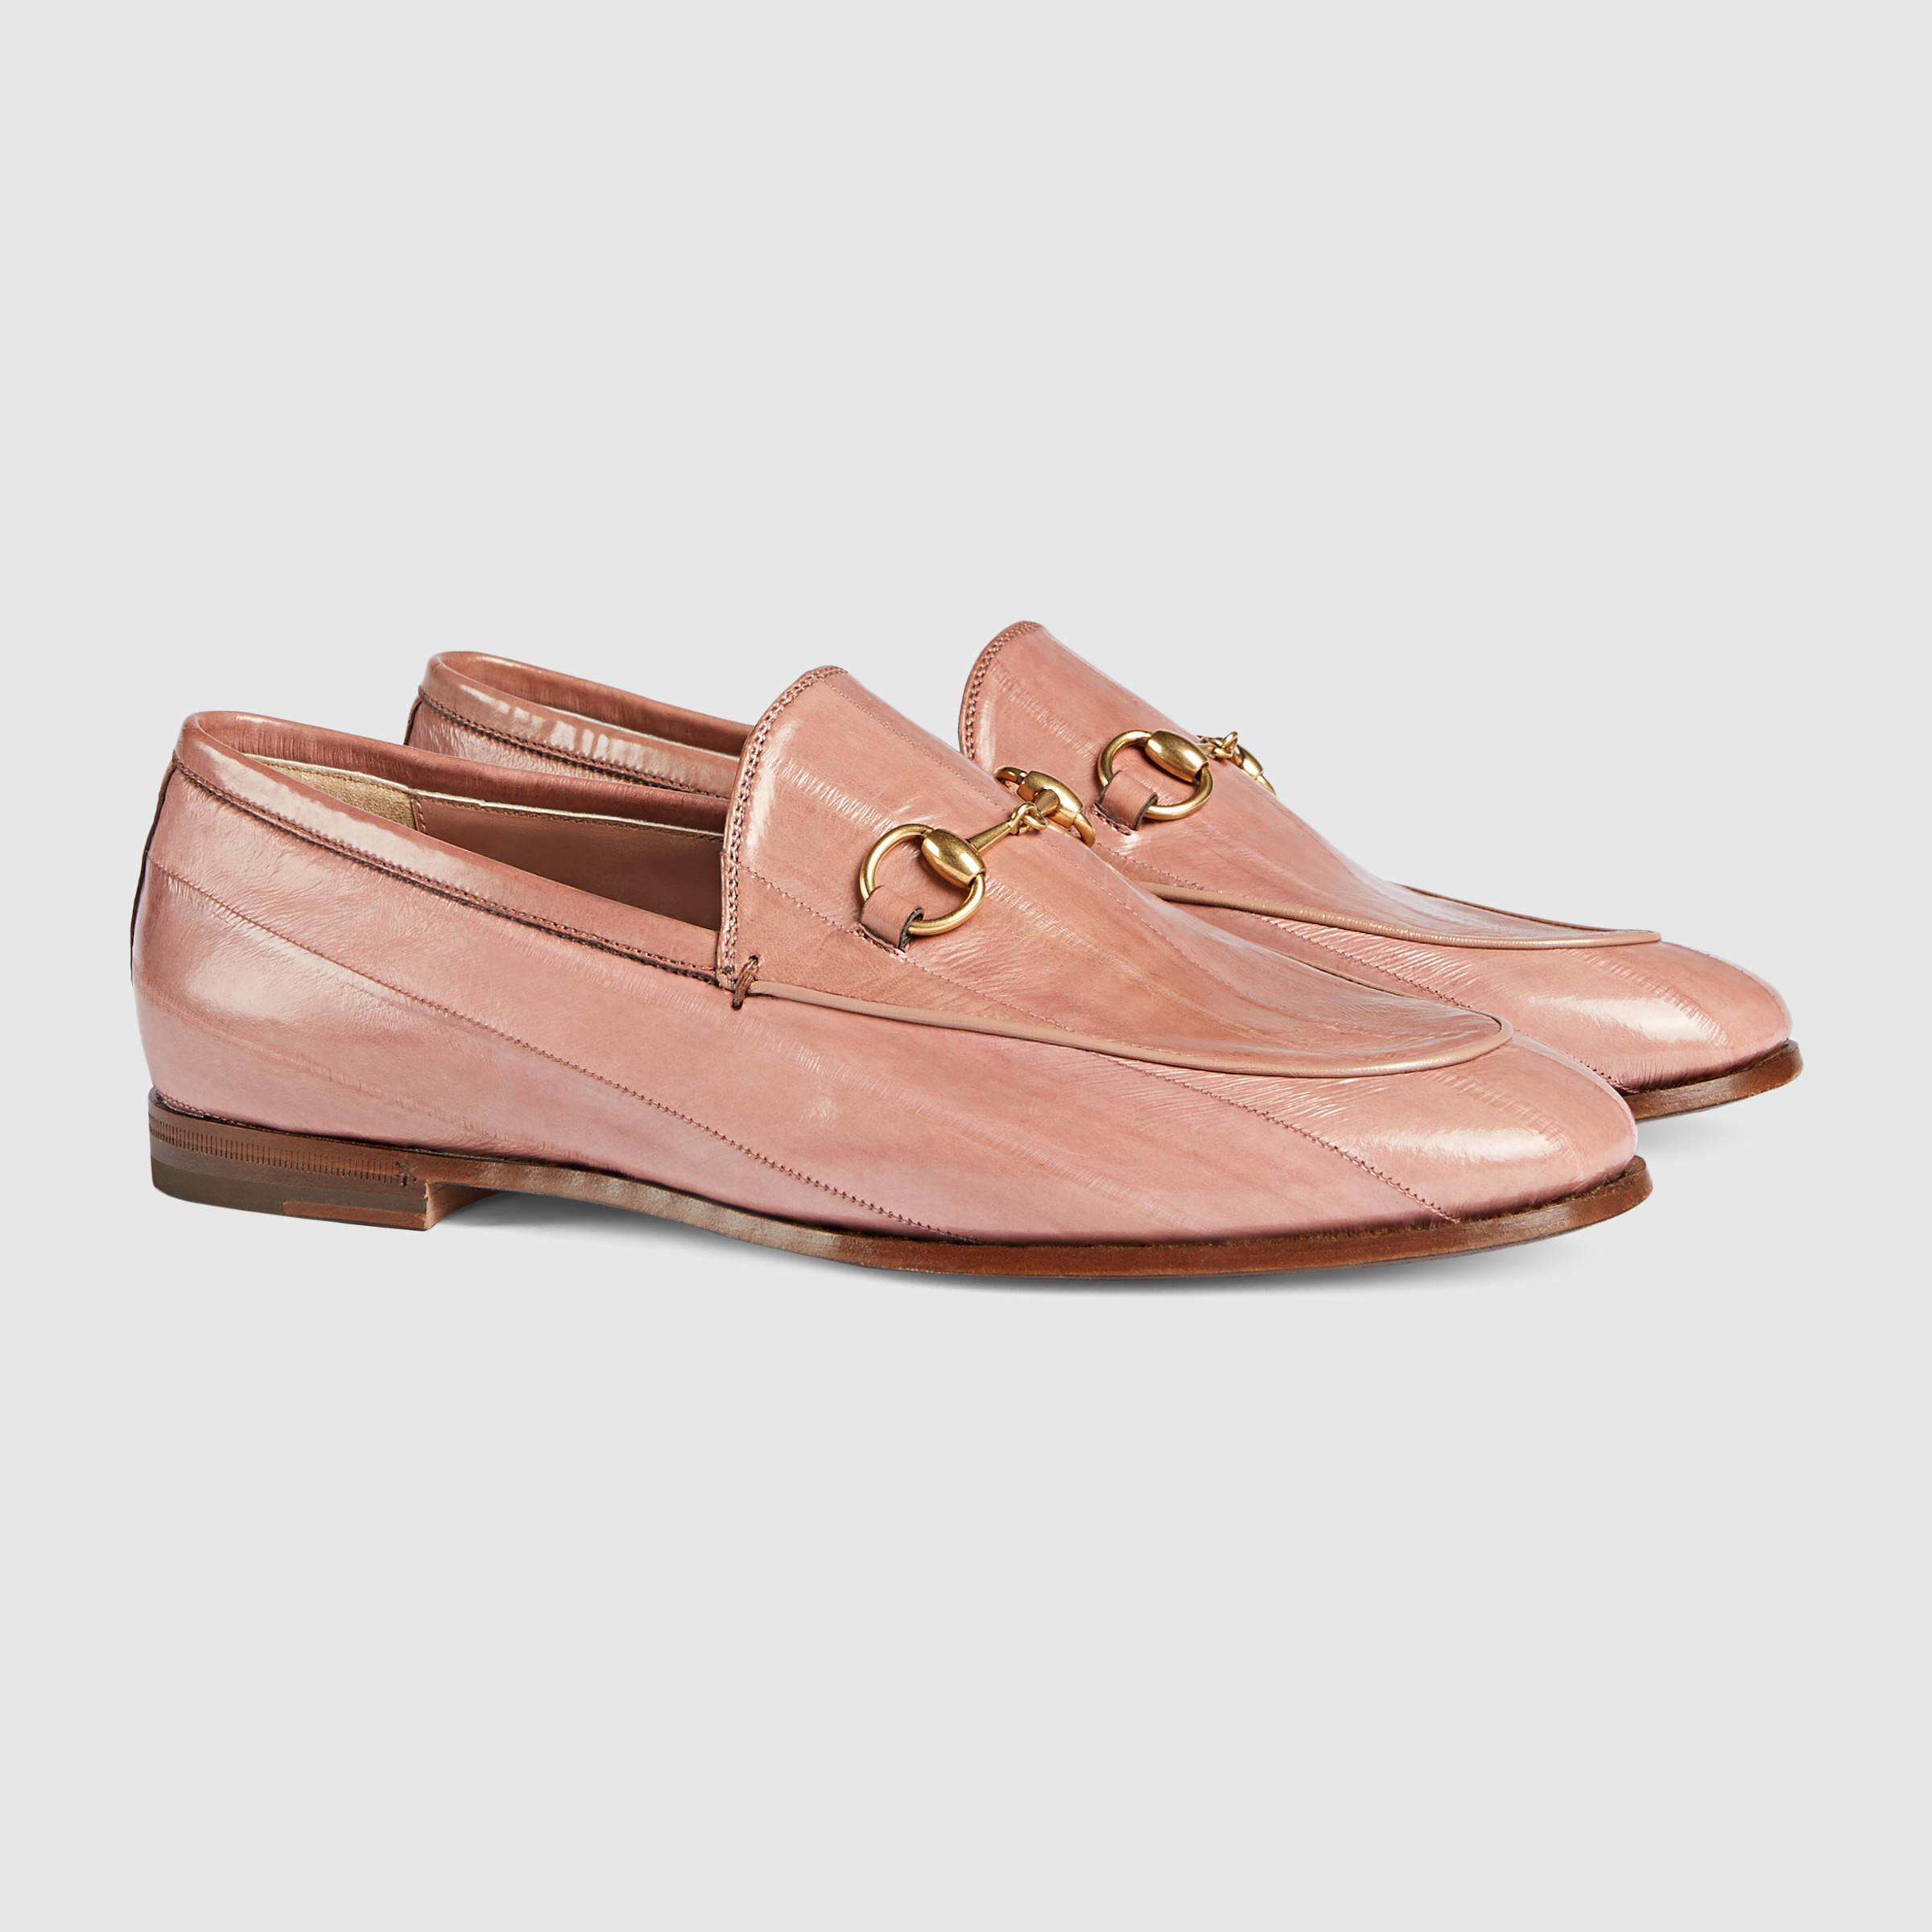 34425f8e2 Gucci Jordaan Eel Loafer in Pink - Lyst